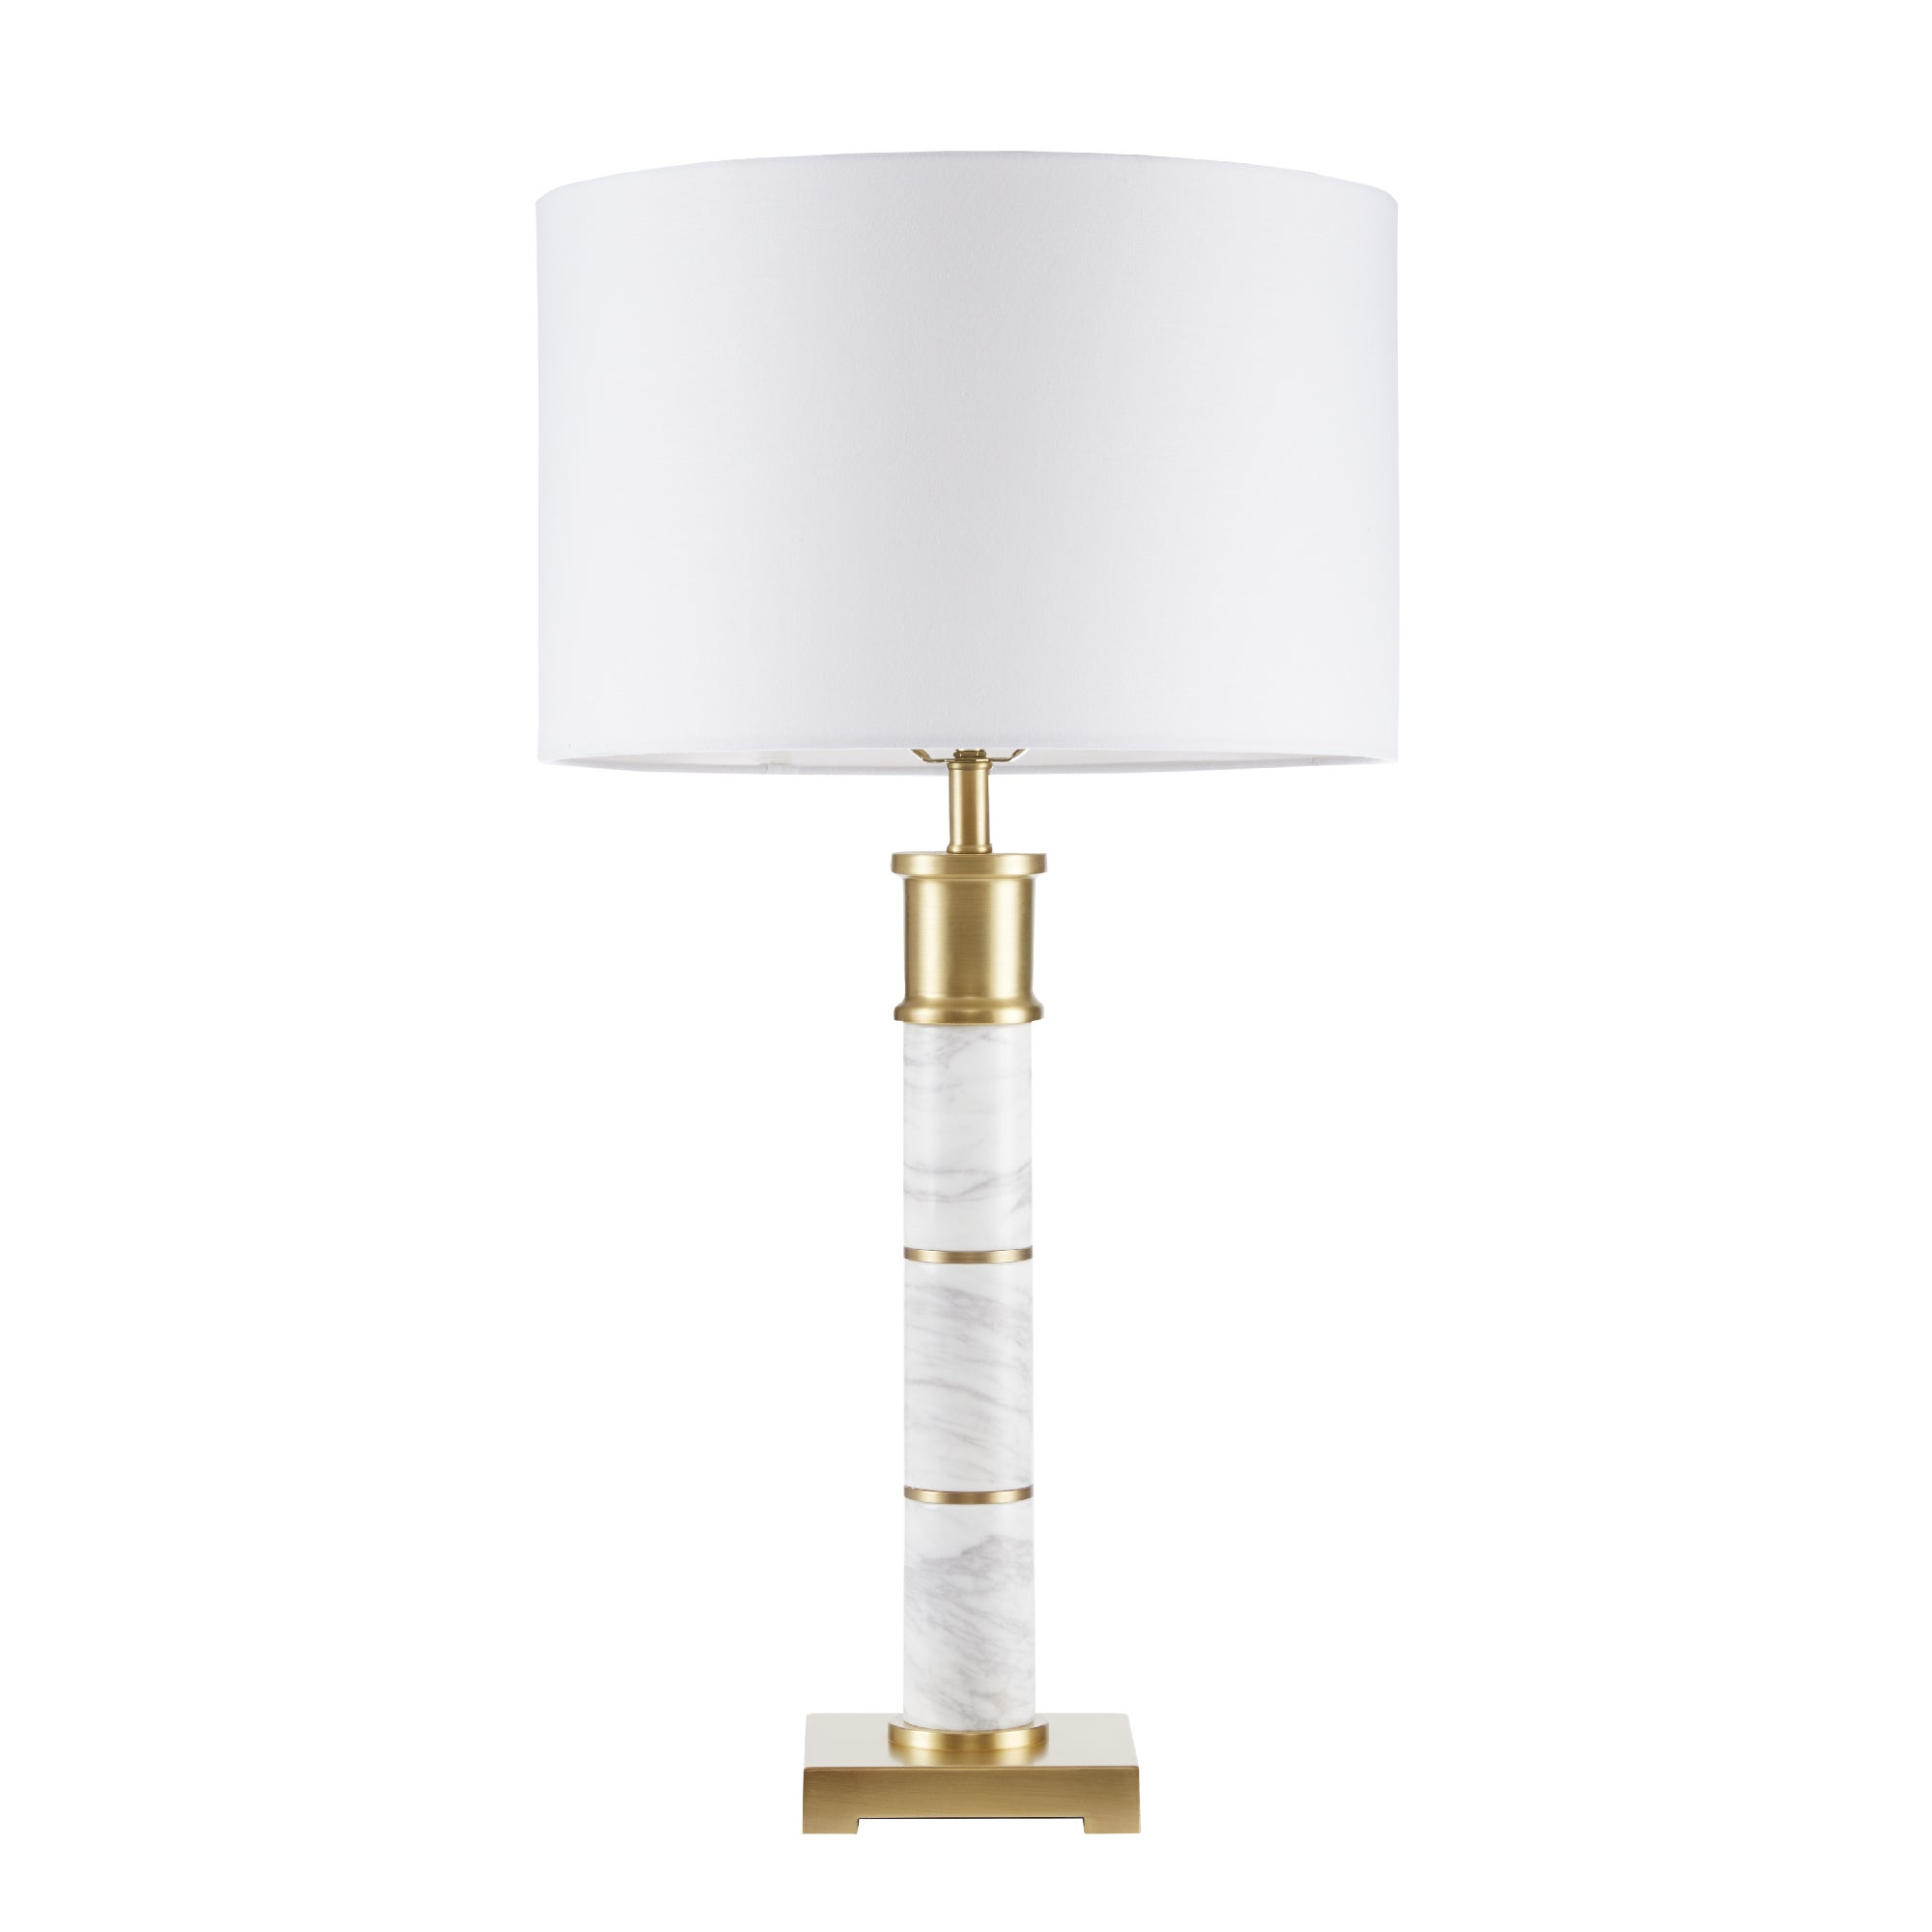 circle semi lamp pin white and gold table